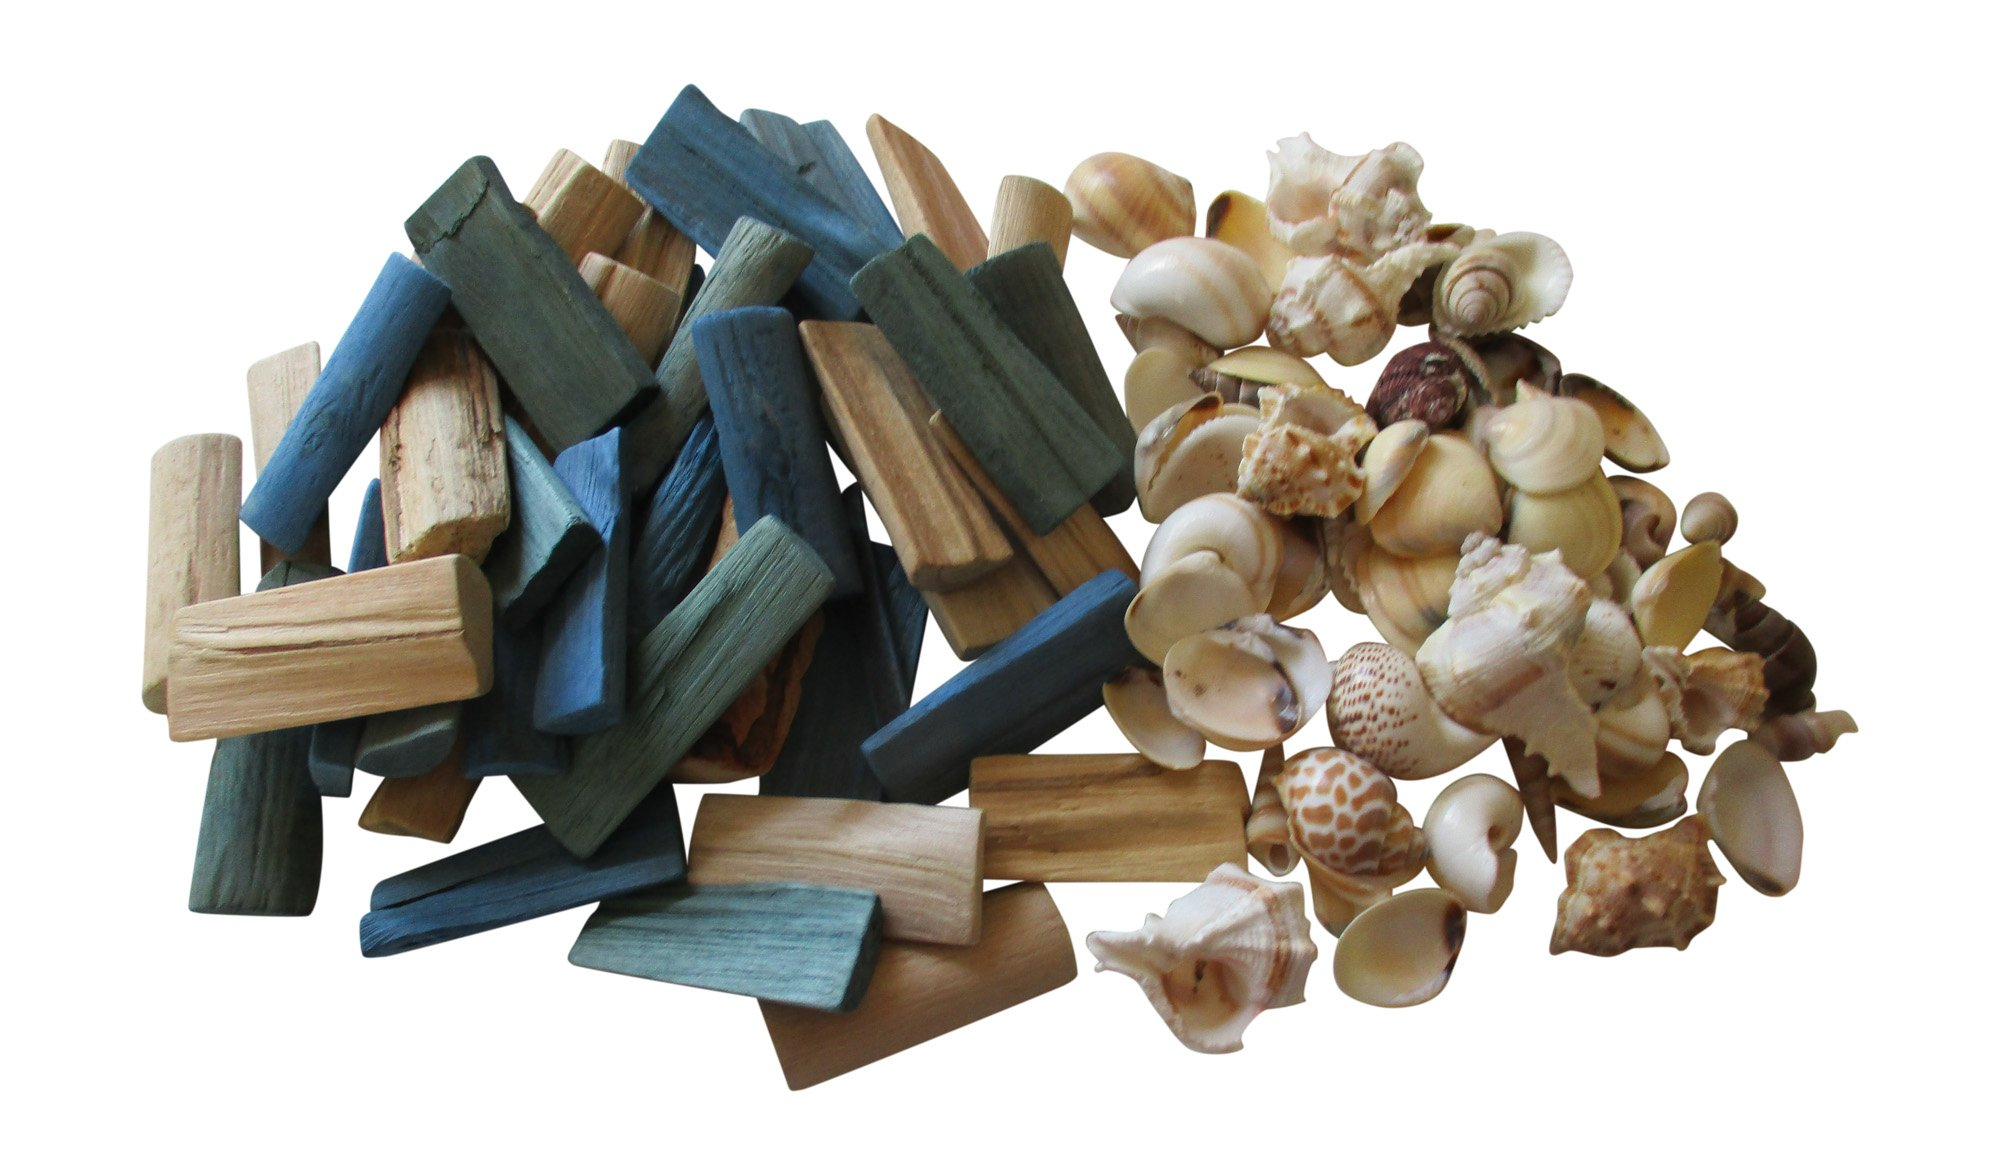 From The Attic Crafts Sea Shells and Wood Bowl Filler Set Beach Decor in Auqa, Seagrass Green and Natural